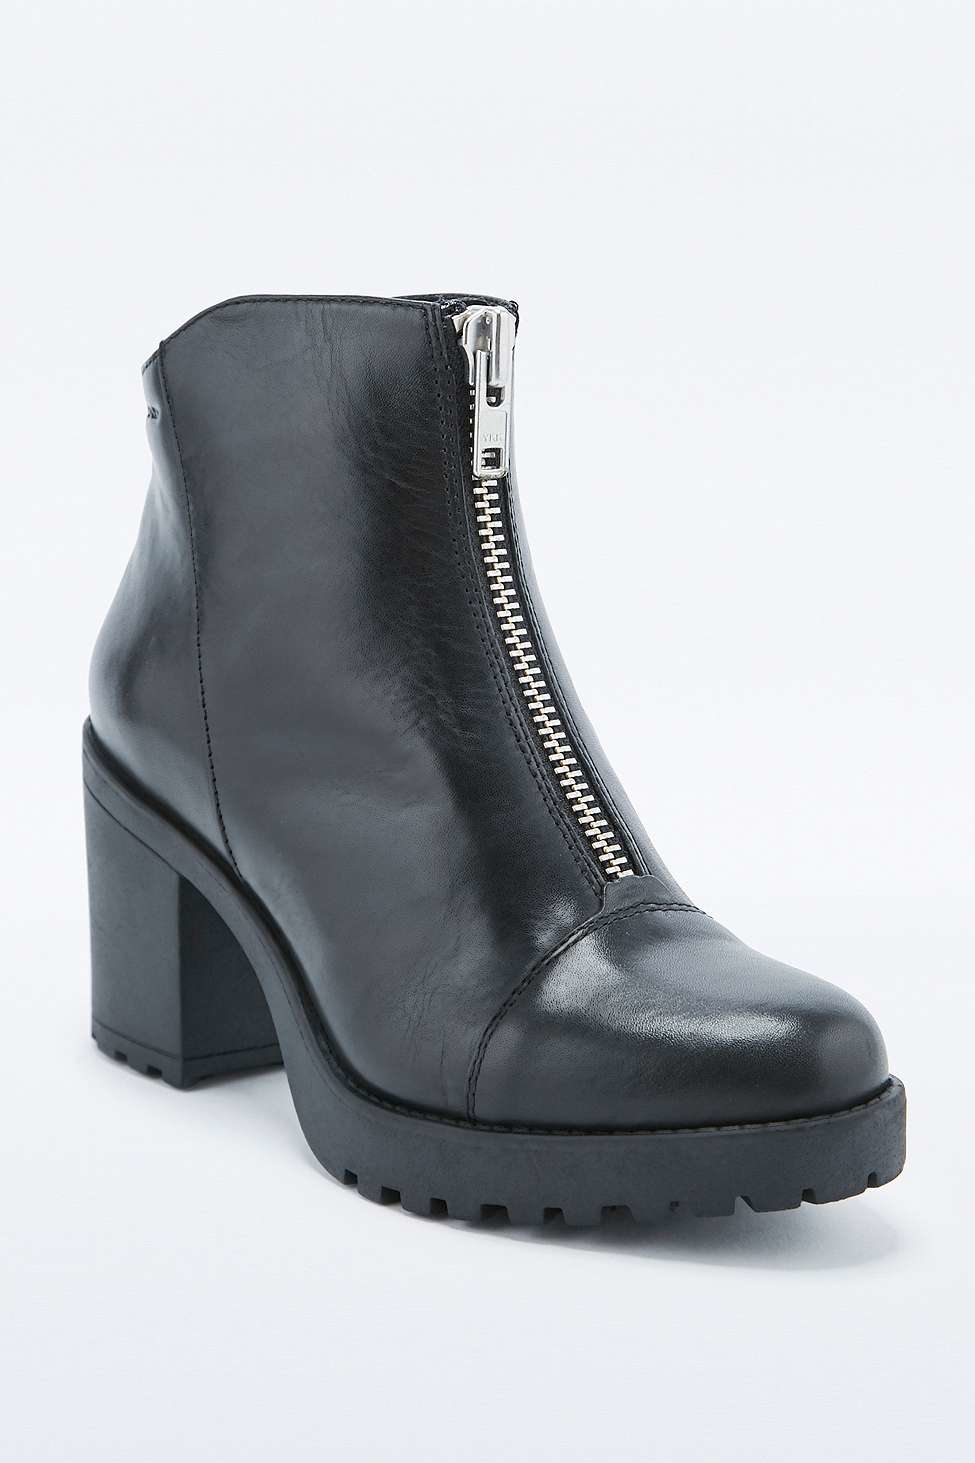 Vagabond Leather Grace Zip Front Ankle Boots in Black